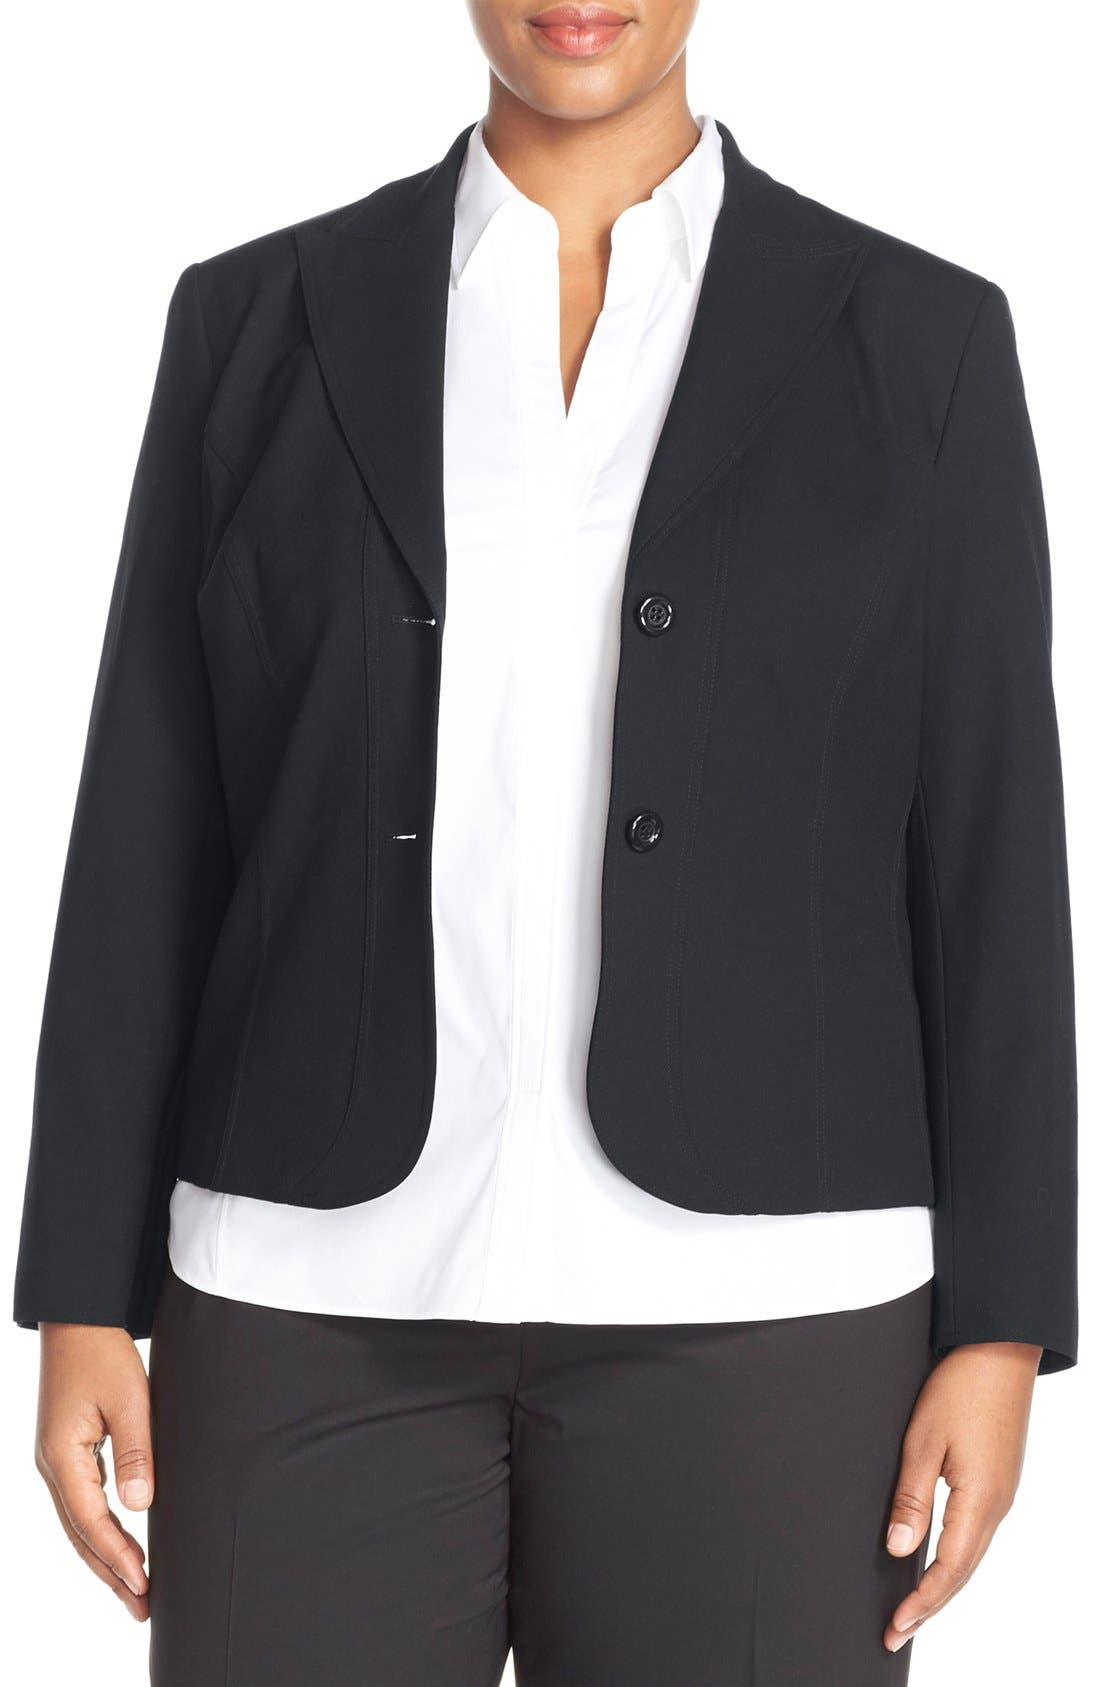 Main Image - Lafayette 148 New York 'Gladstone' Stretch Wool Jacket (Plus Size) (Nordstrom Exclusive)